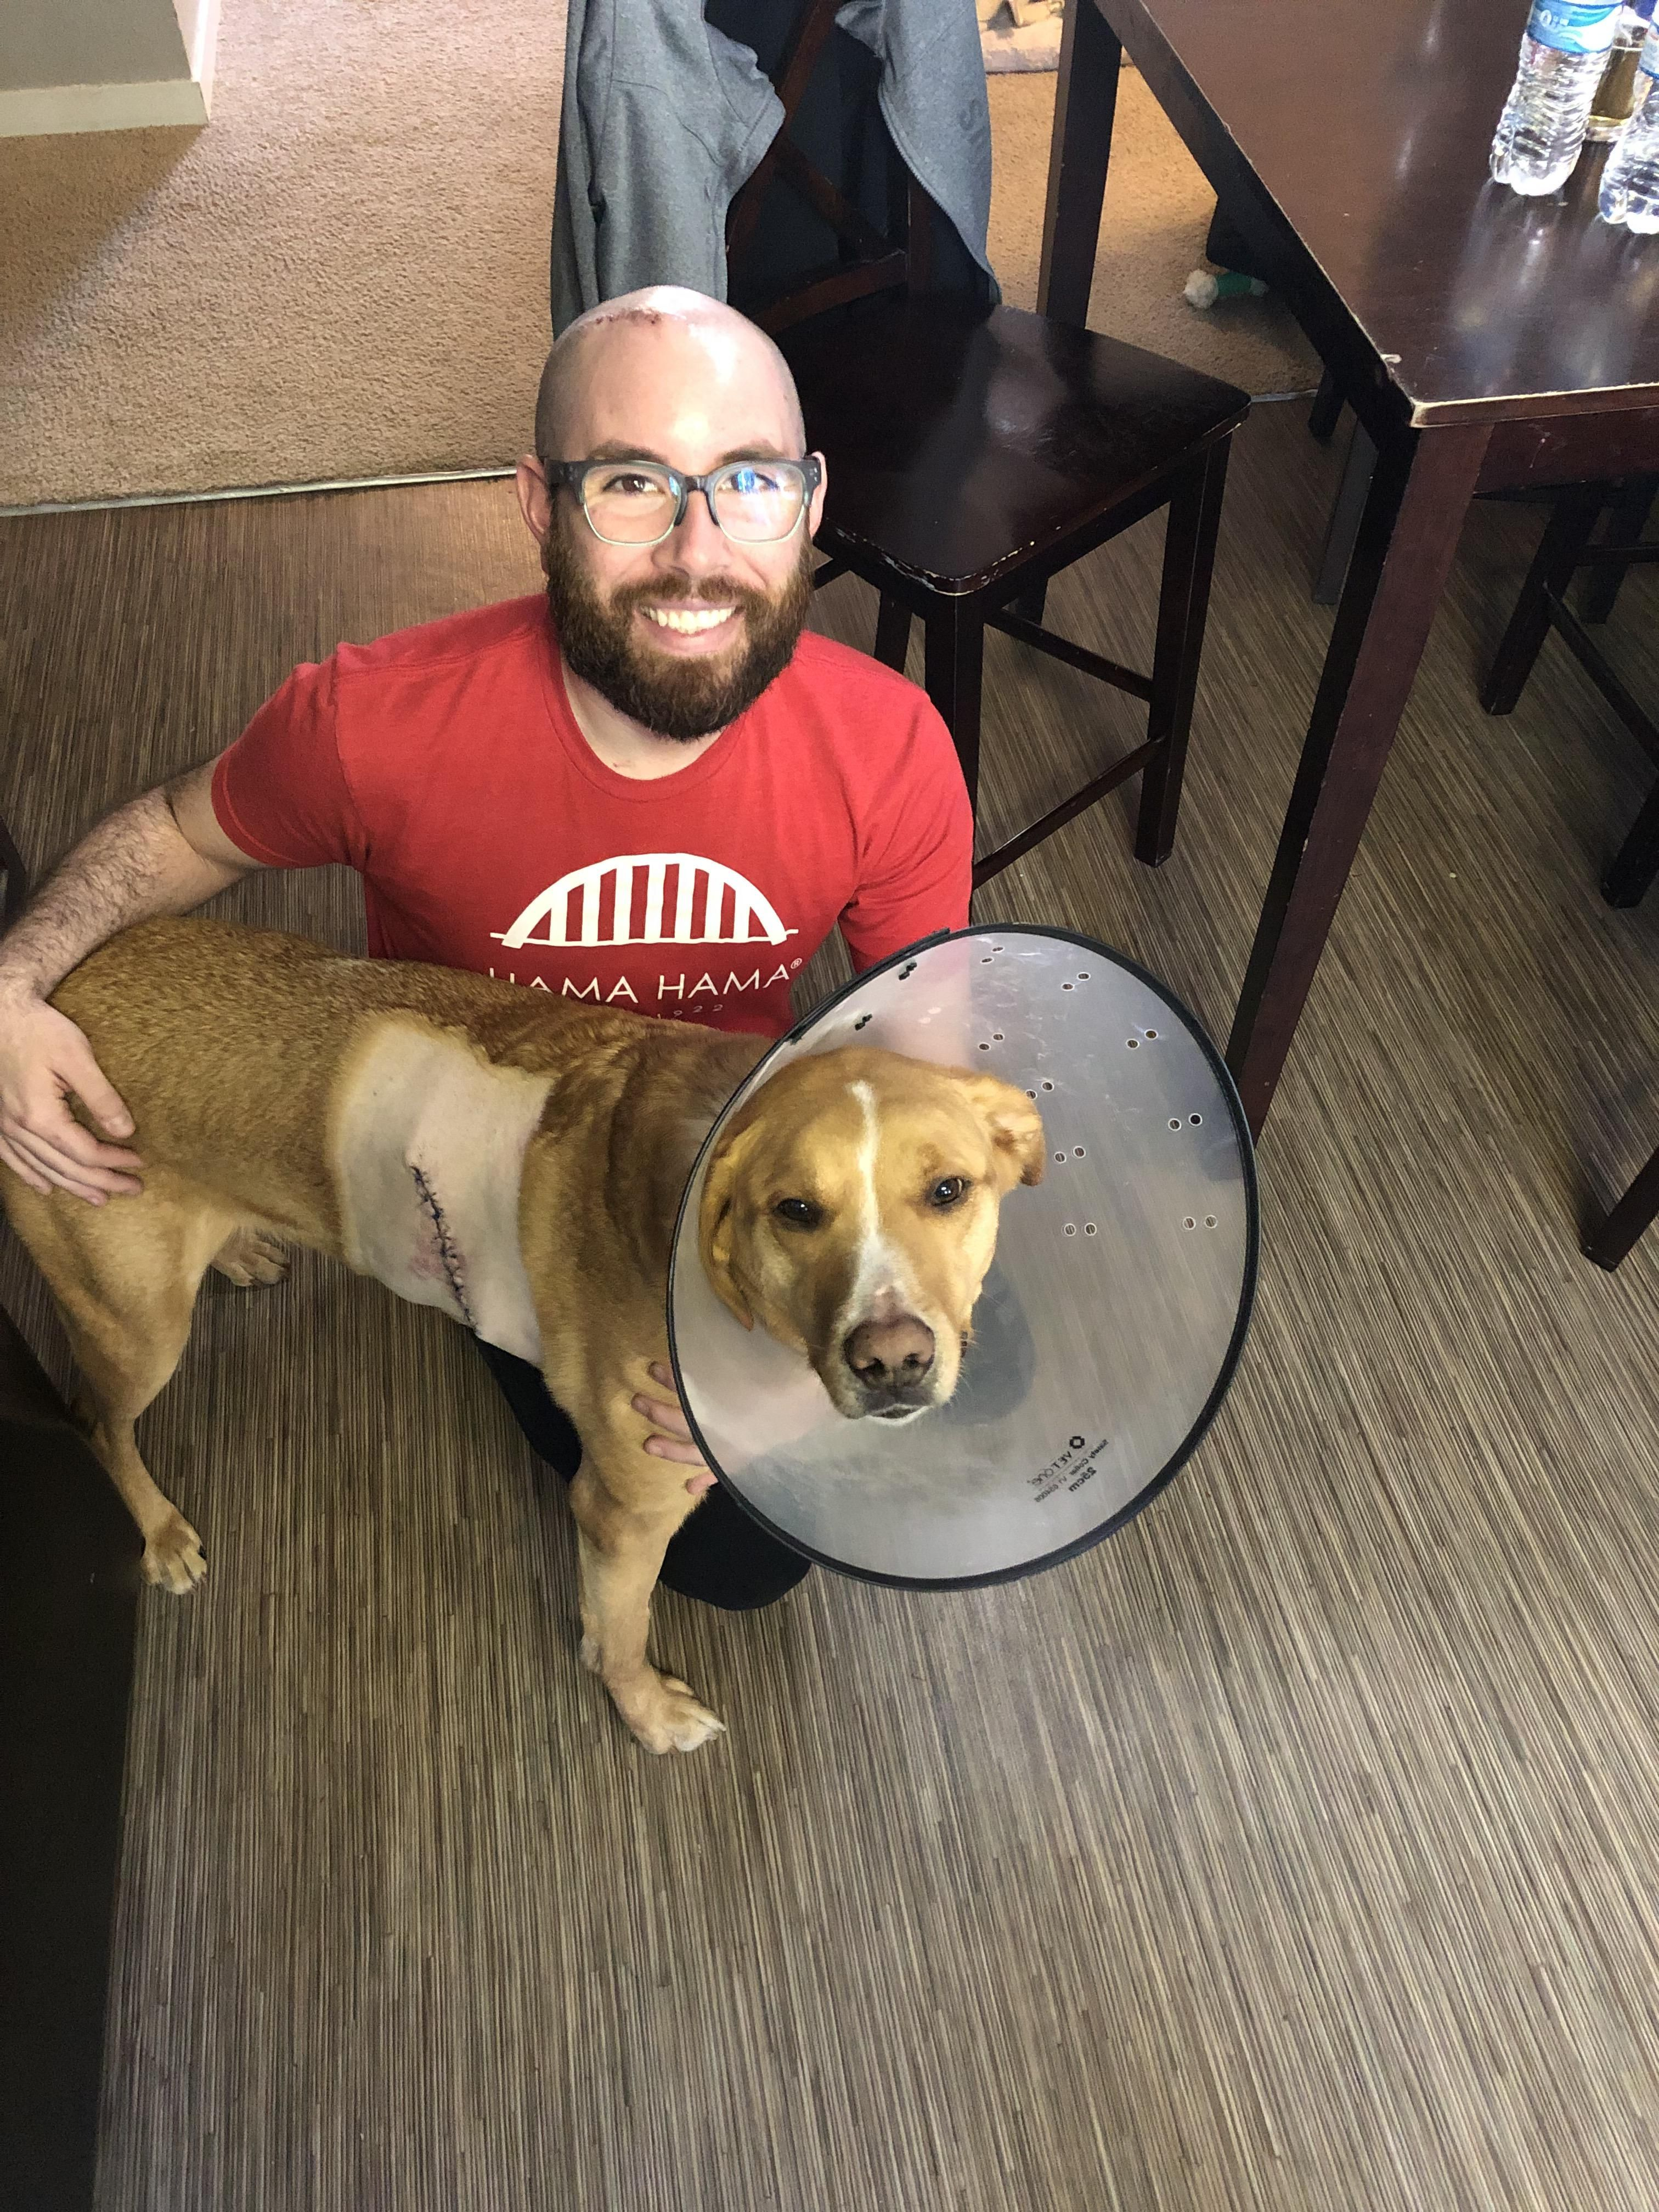 My buddies dog wondering where my cone is after we both have surgery to remove cancer the same day. We also share the same name!